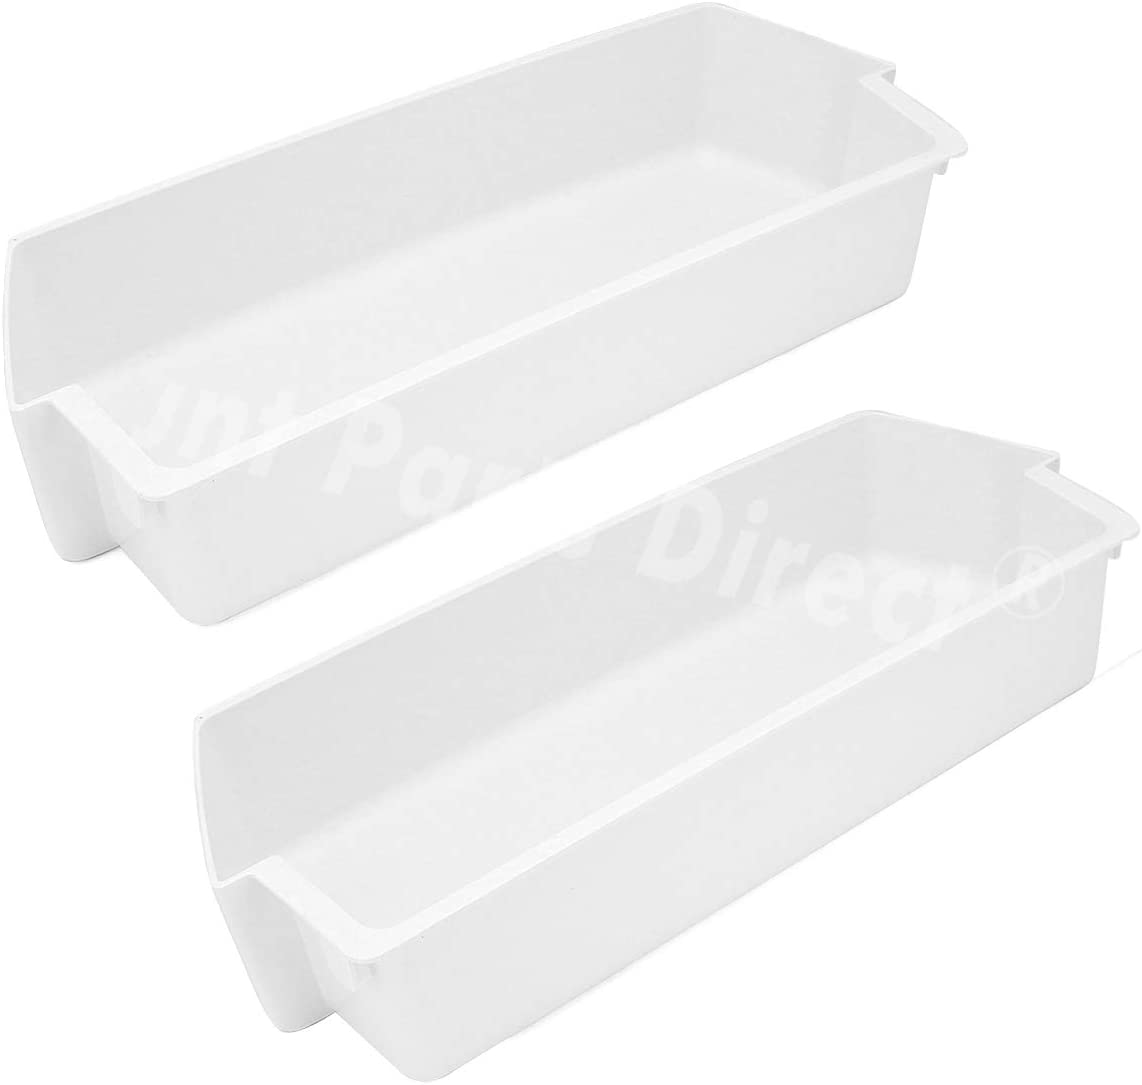 2 Pack 2187172 Door Shelf Bin for Whirlpool for Frigidaire Whirlpool Kenmore Refrigerator PS328468